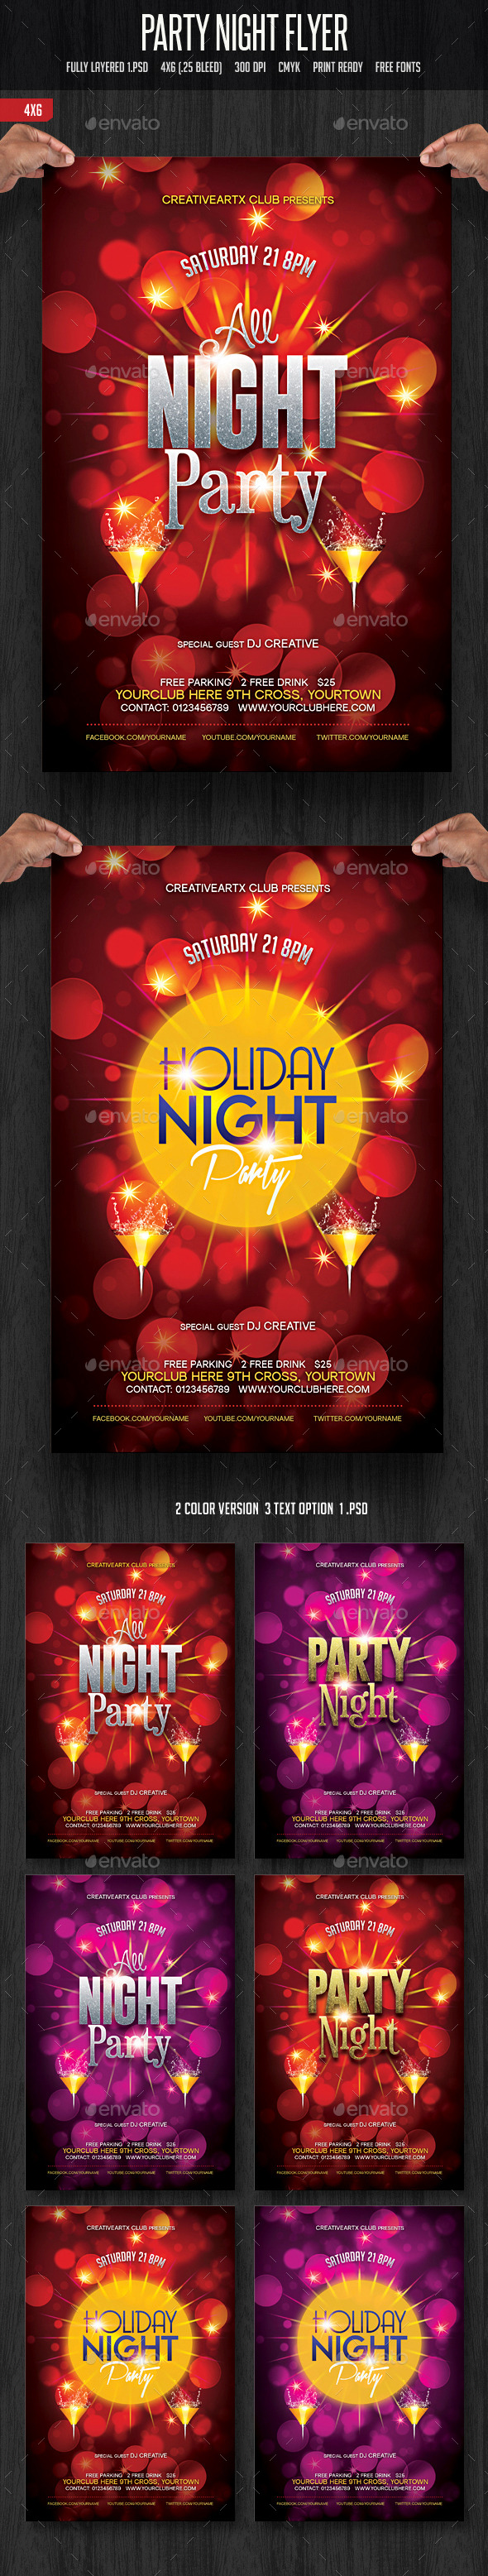 Party Night Flyer - Clubs & Parties Events